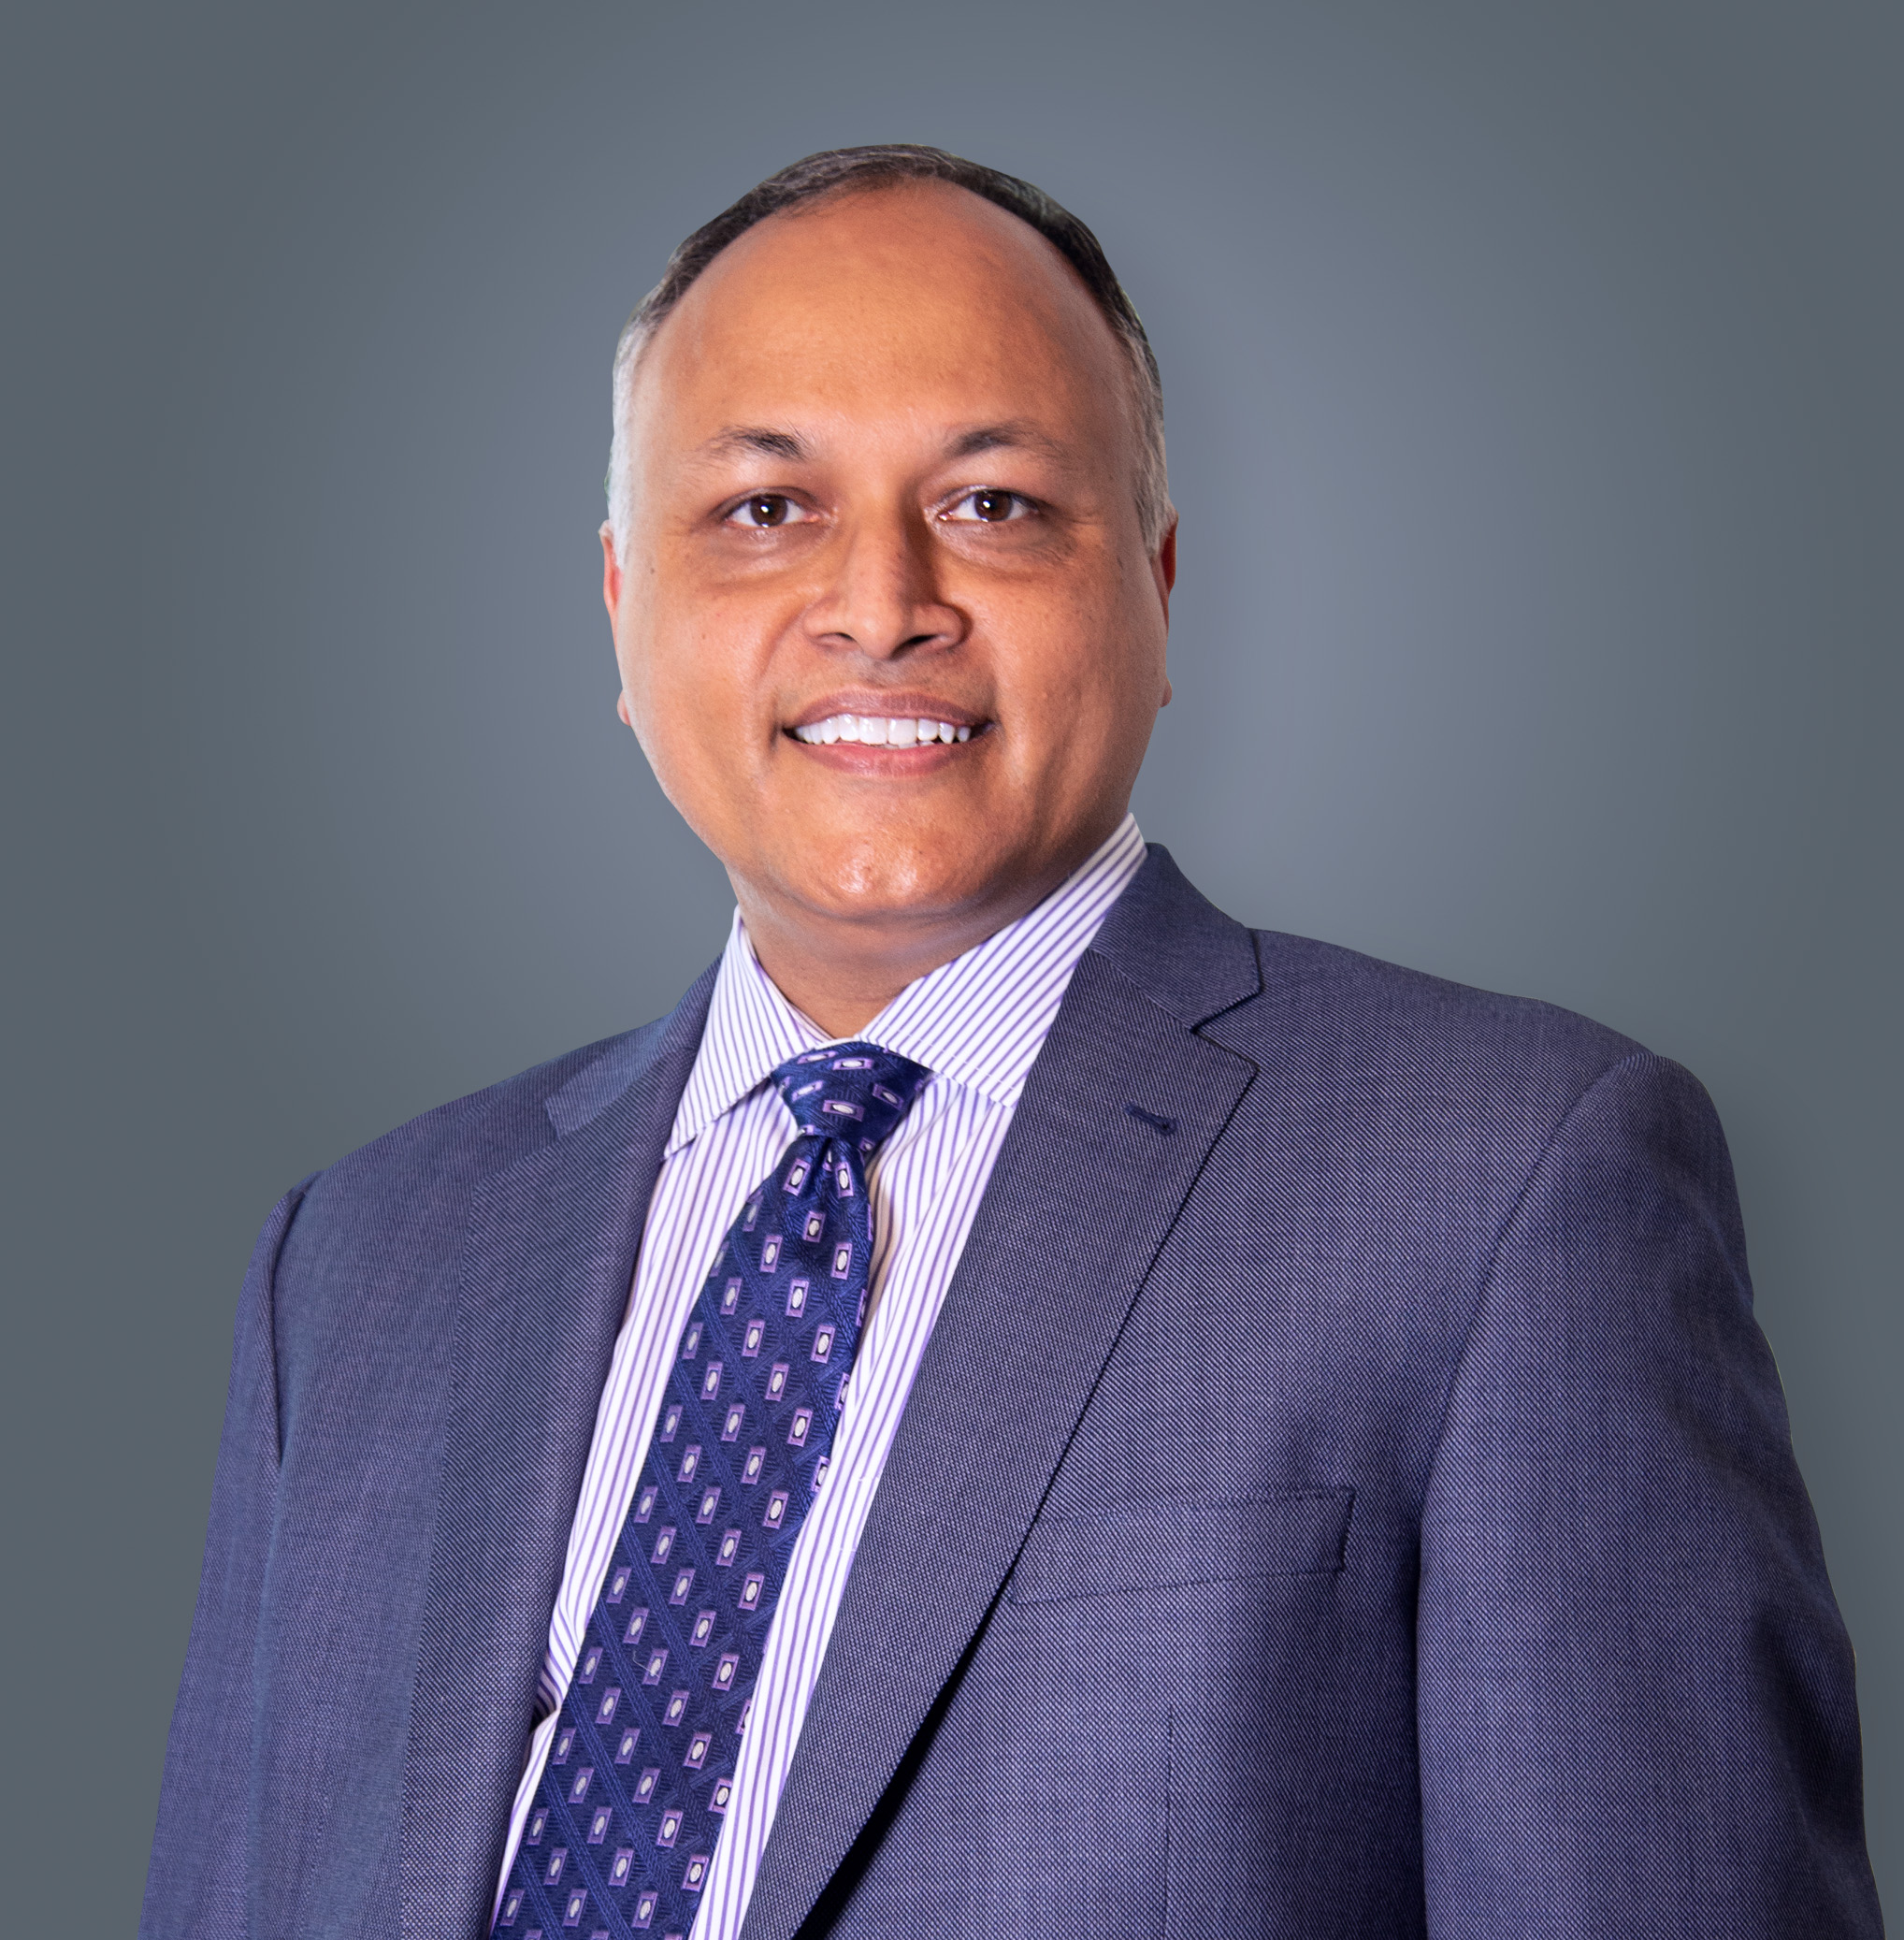 Srini Iyer, ManTech's Chief Technology Officer and head of the company's Innovation and Capabilities Office (ICO)